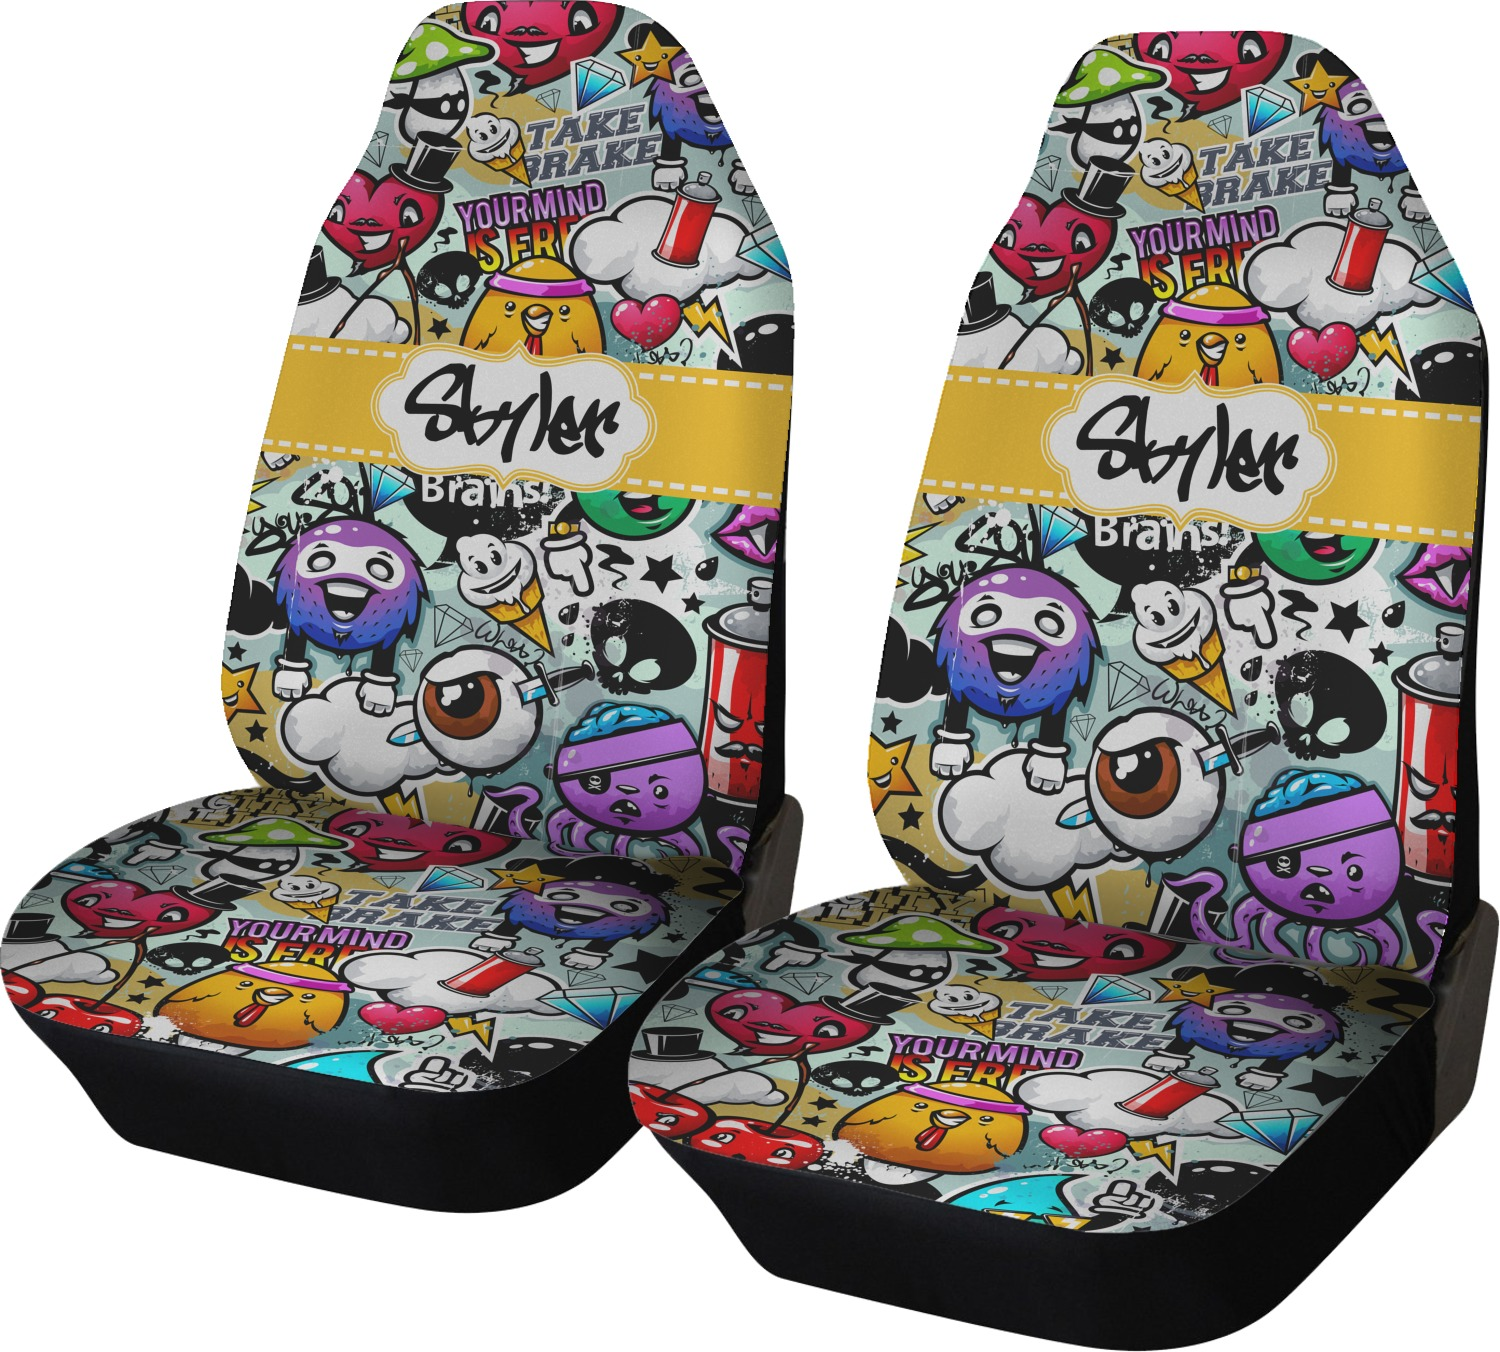 Graffiti Car Seat Covers Set Of Two Personalized